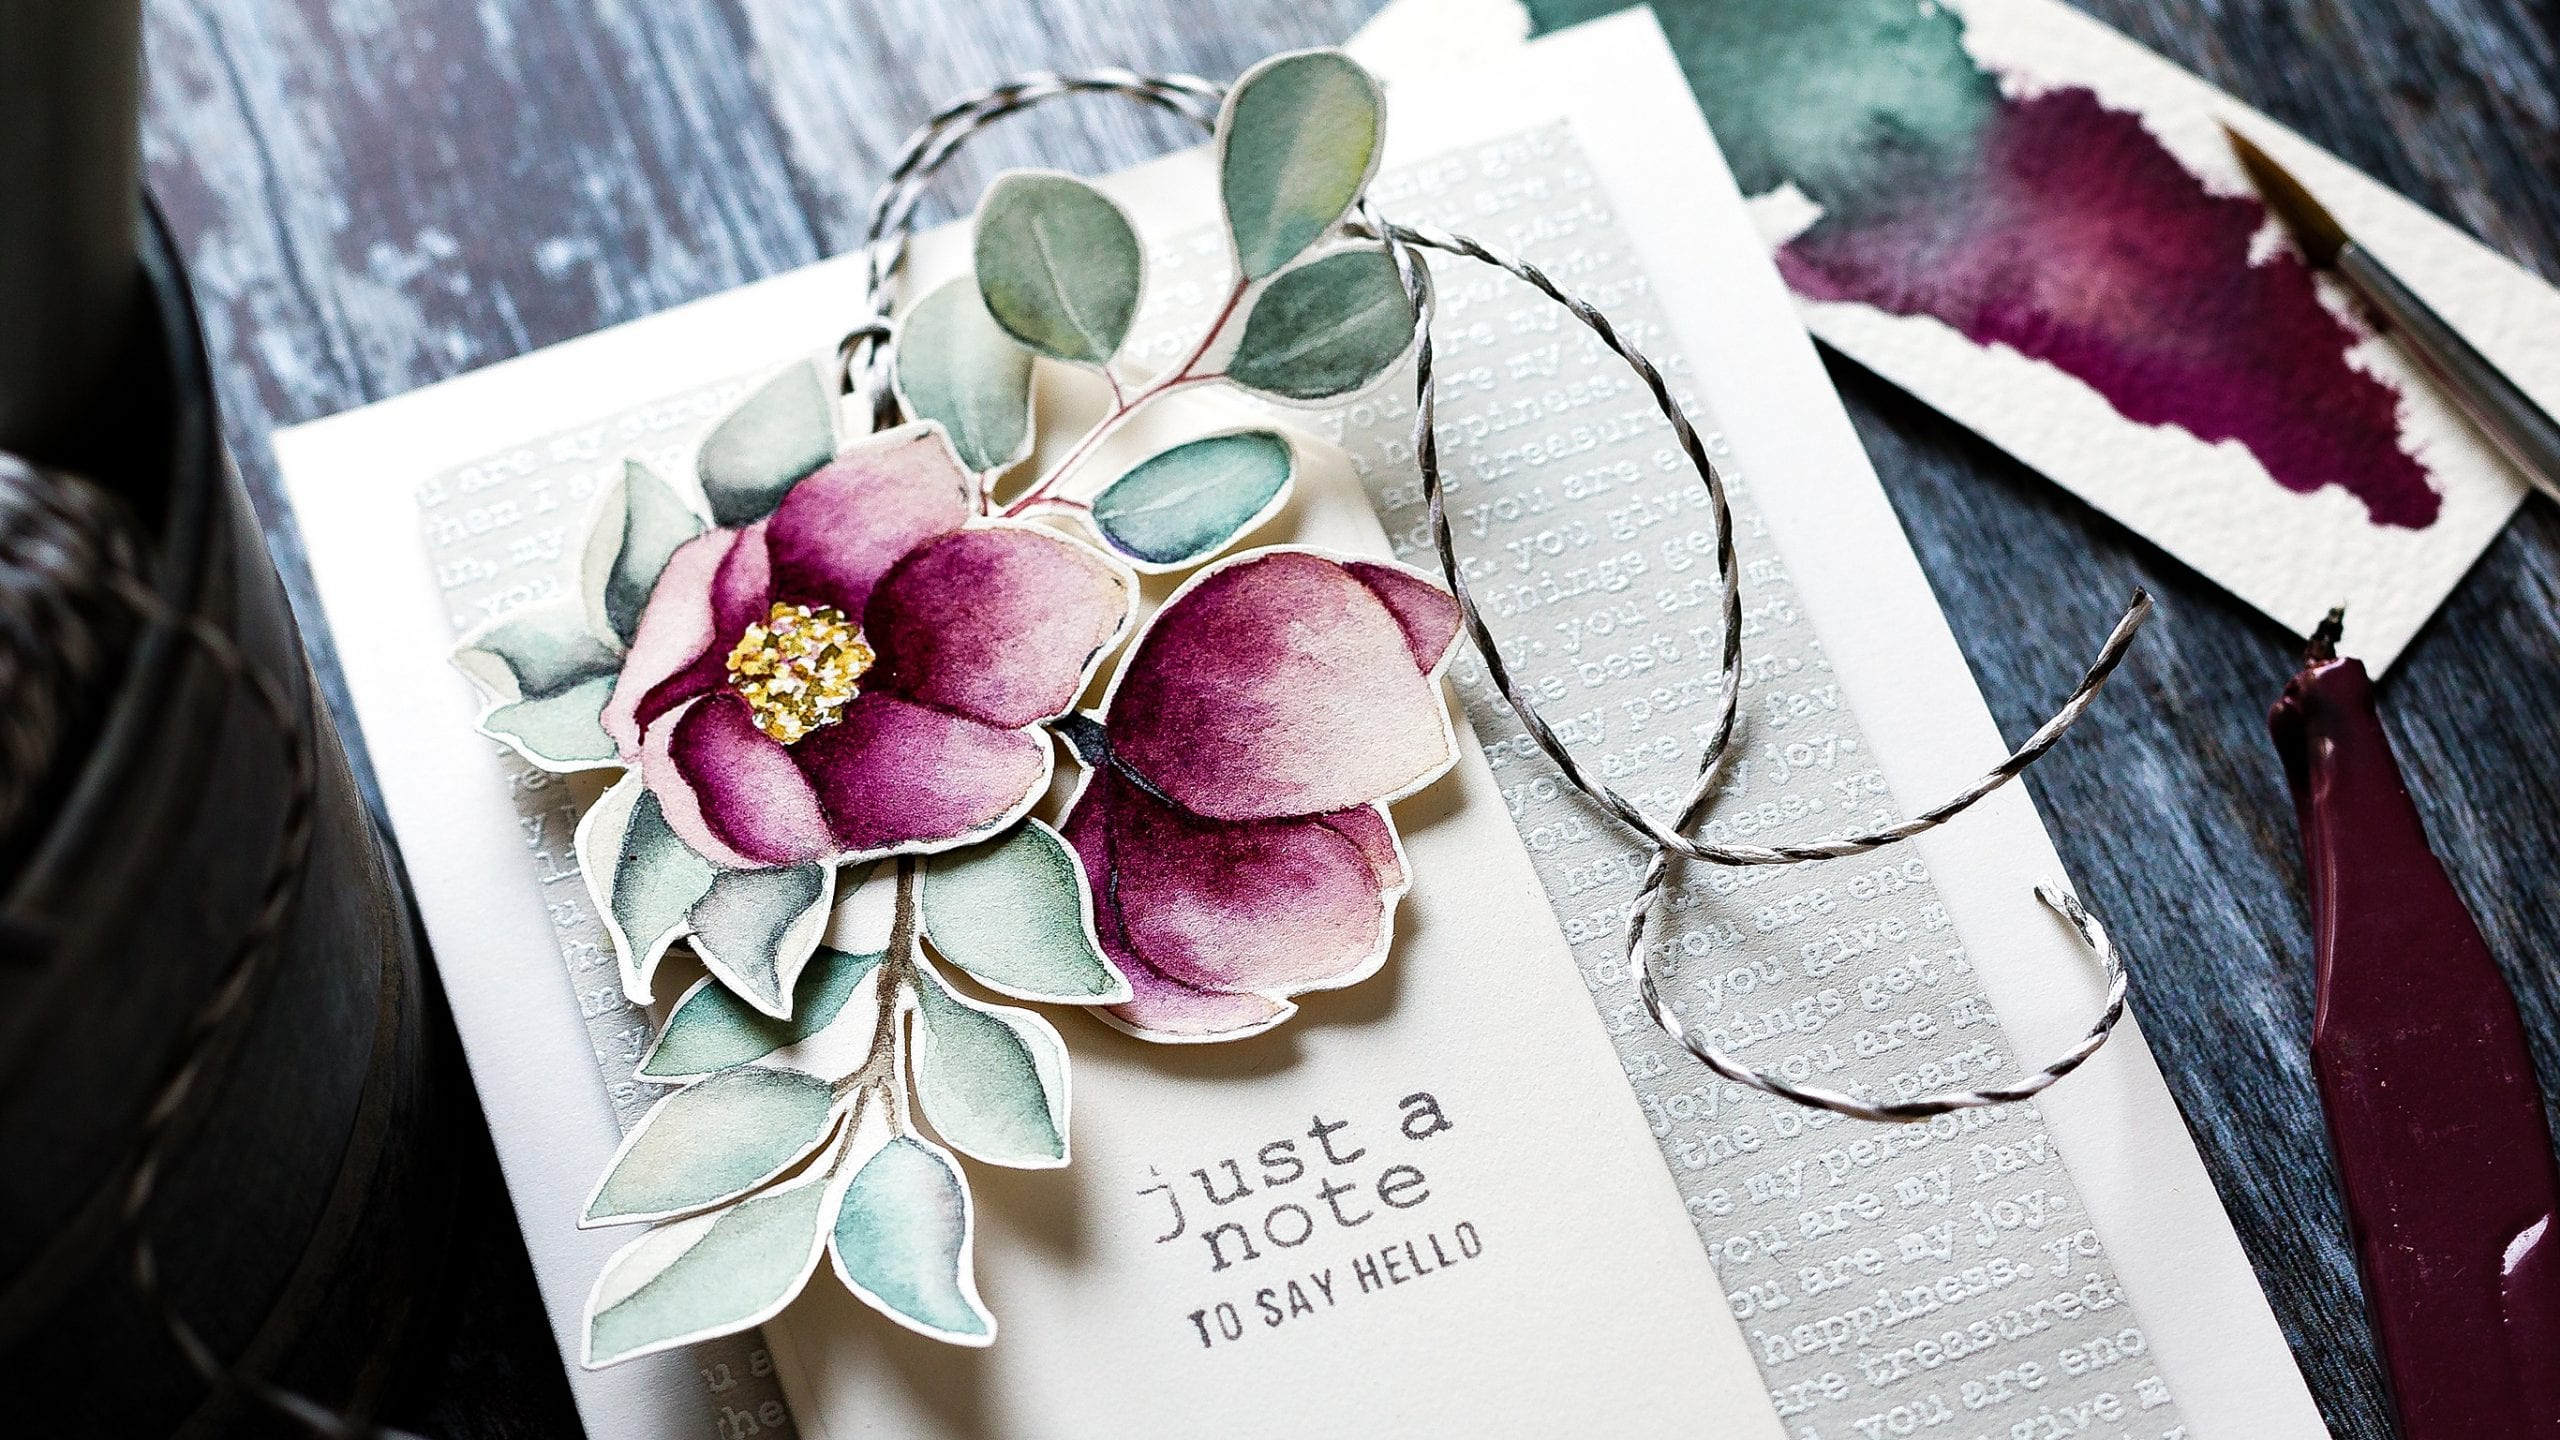 Softly watercoloured hellebores spring flowers handmade card by Debby Hughes using supplies from Simon Says Stamp #handmade #homemade #watercolor